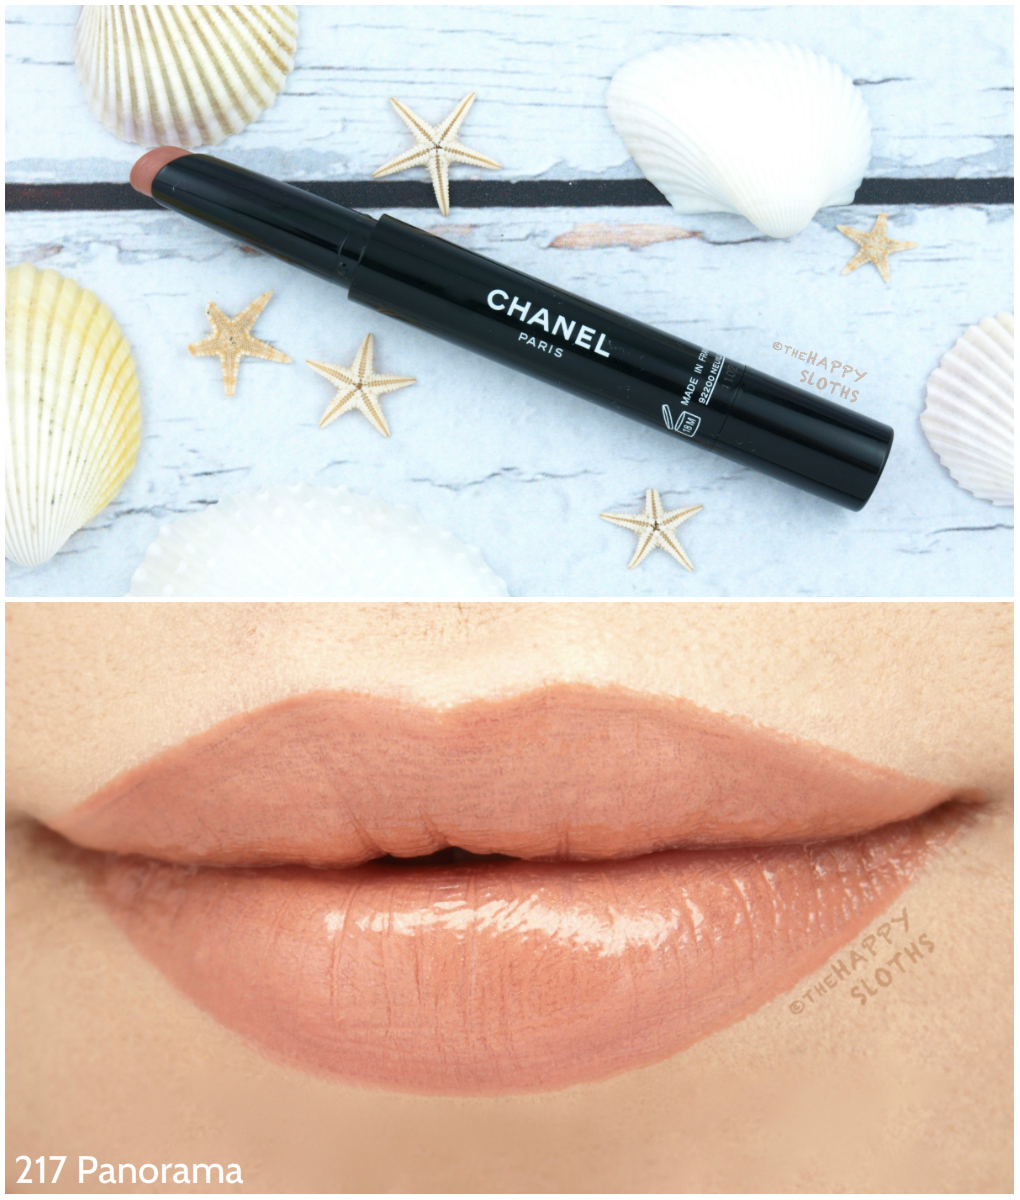 Beauty marker chanel rouge coco lipsticks review and swatches - Chanel Rouge Coco Stylo Complete Care Lipshine In 217 Panorama